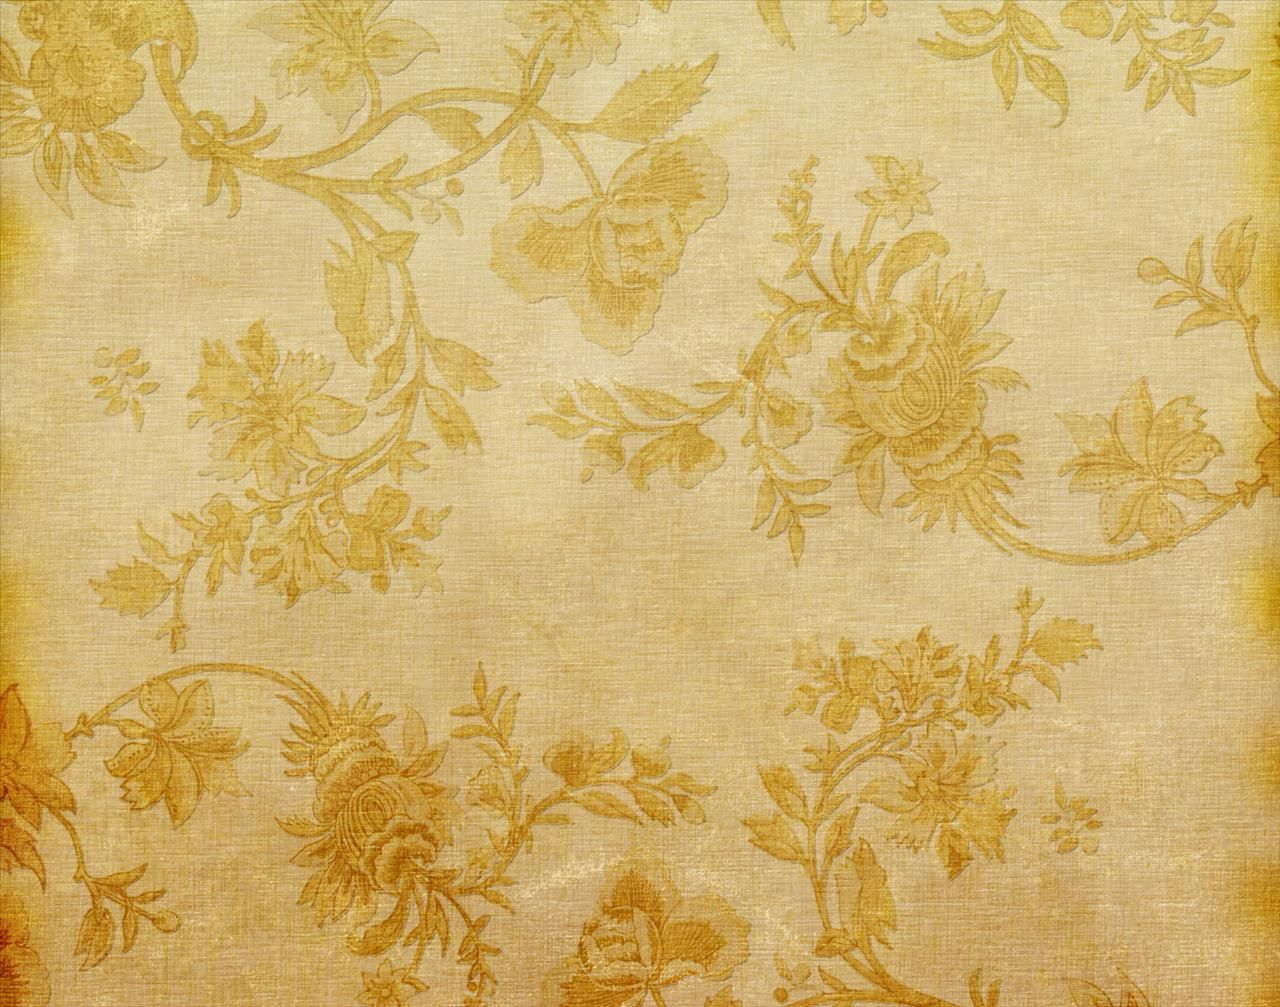 The Yellow Wallpaper By Jprotger Publish With Glogster Yellow Wallpaper Wallpapers Vintage Vintage Floral Wallpapers